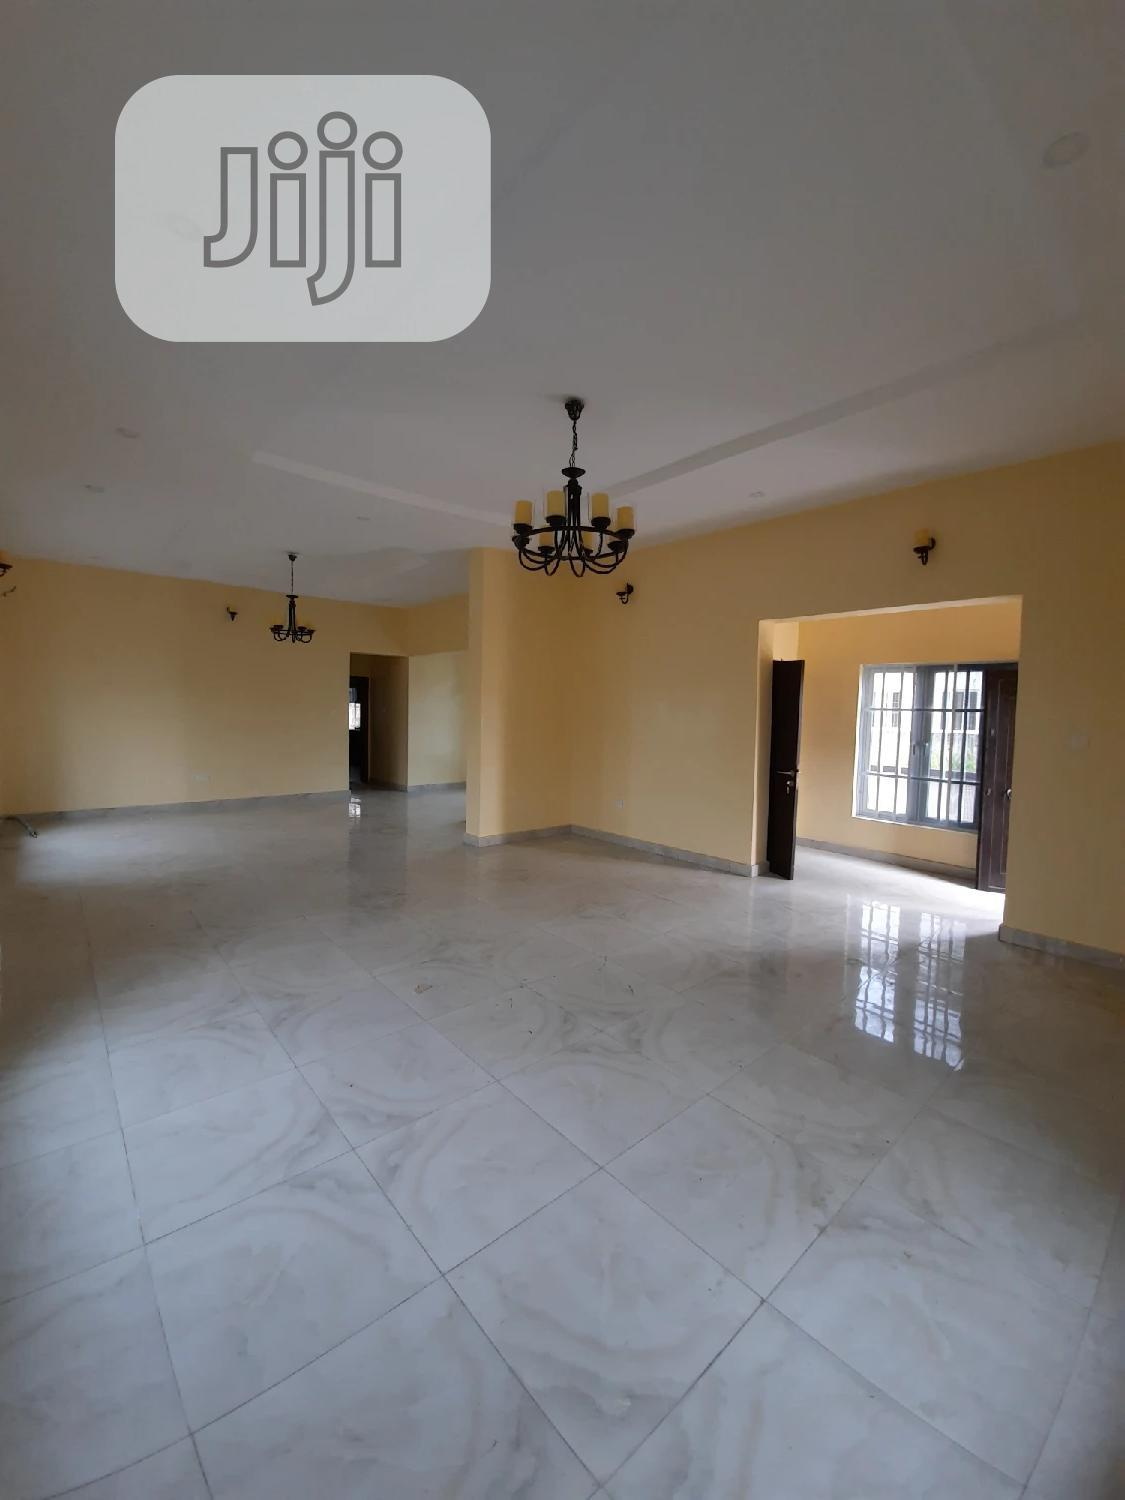 A Standard 5bedrooms Fully Detached Duplex | Houses & Apartments For Sale for sale in Lekki Phase 2, Lekki, Nigeria